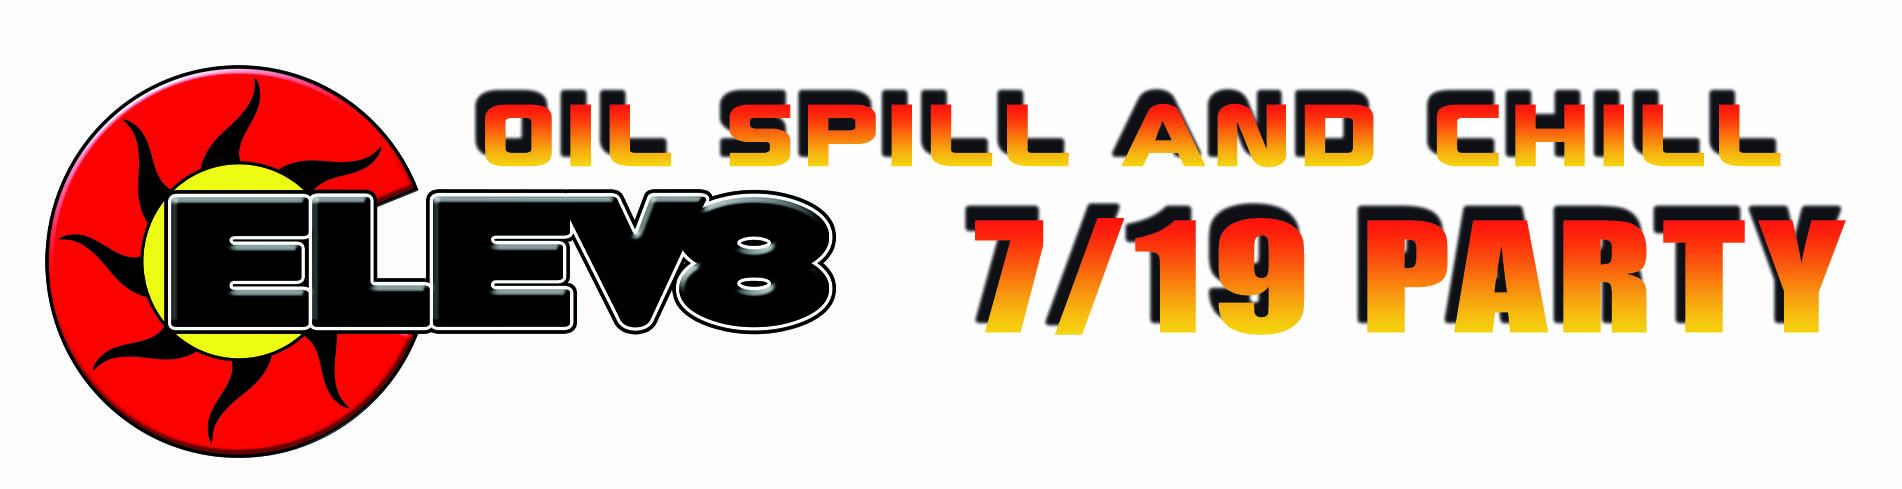 oil-spill-small-graphic.jpg